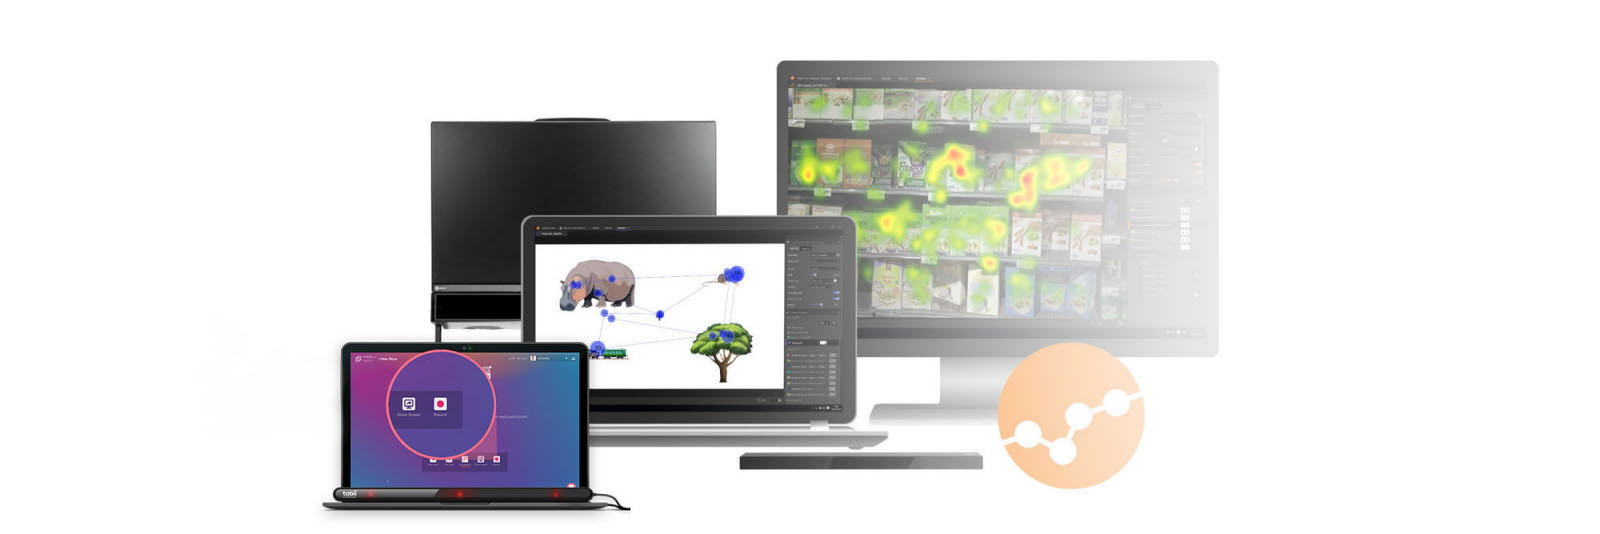 Tobii Pro products